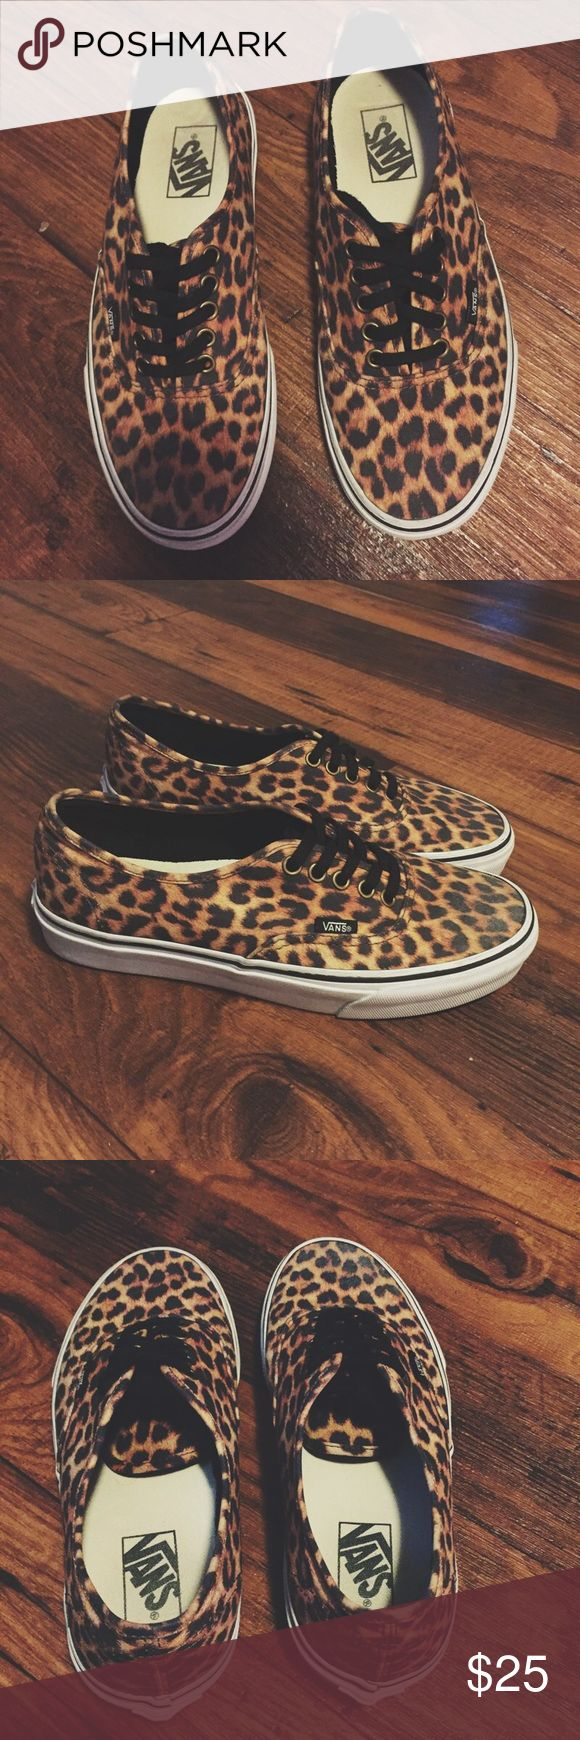 Leopard Print Vans Sneakers Super cute for the summer and versatile because leopard print is universal! There is a small smudge on the left toe but it is barely noticeable when worn. Vans Shoes Sneakers